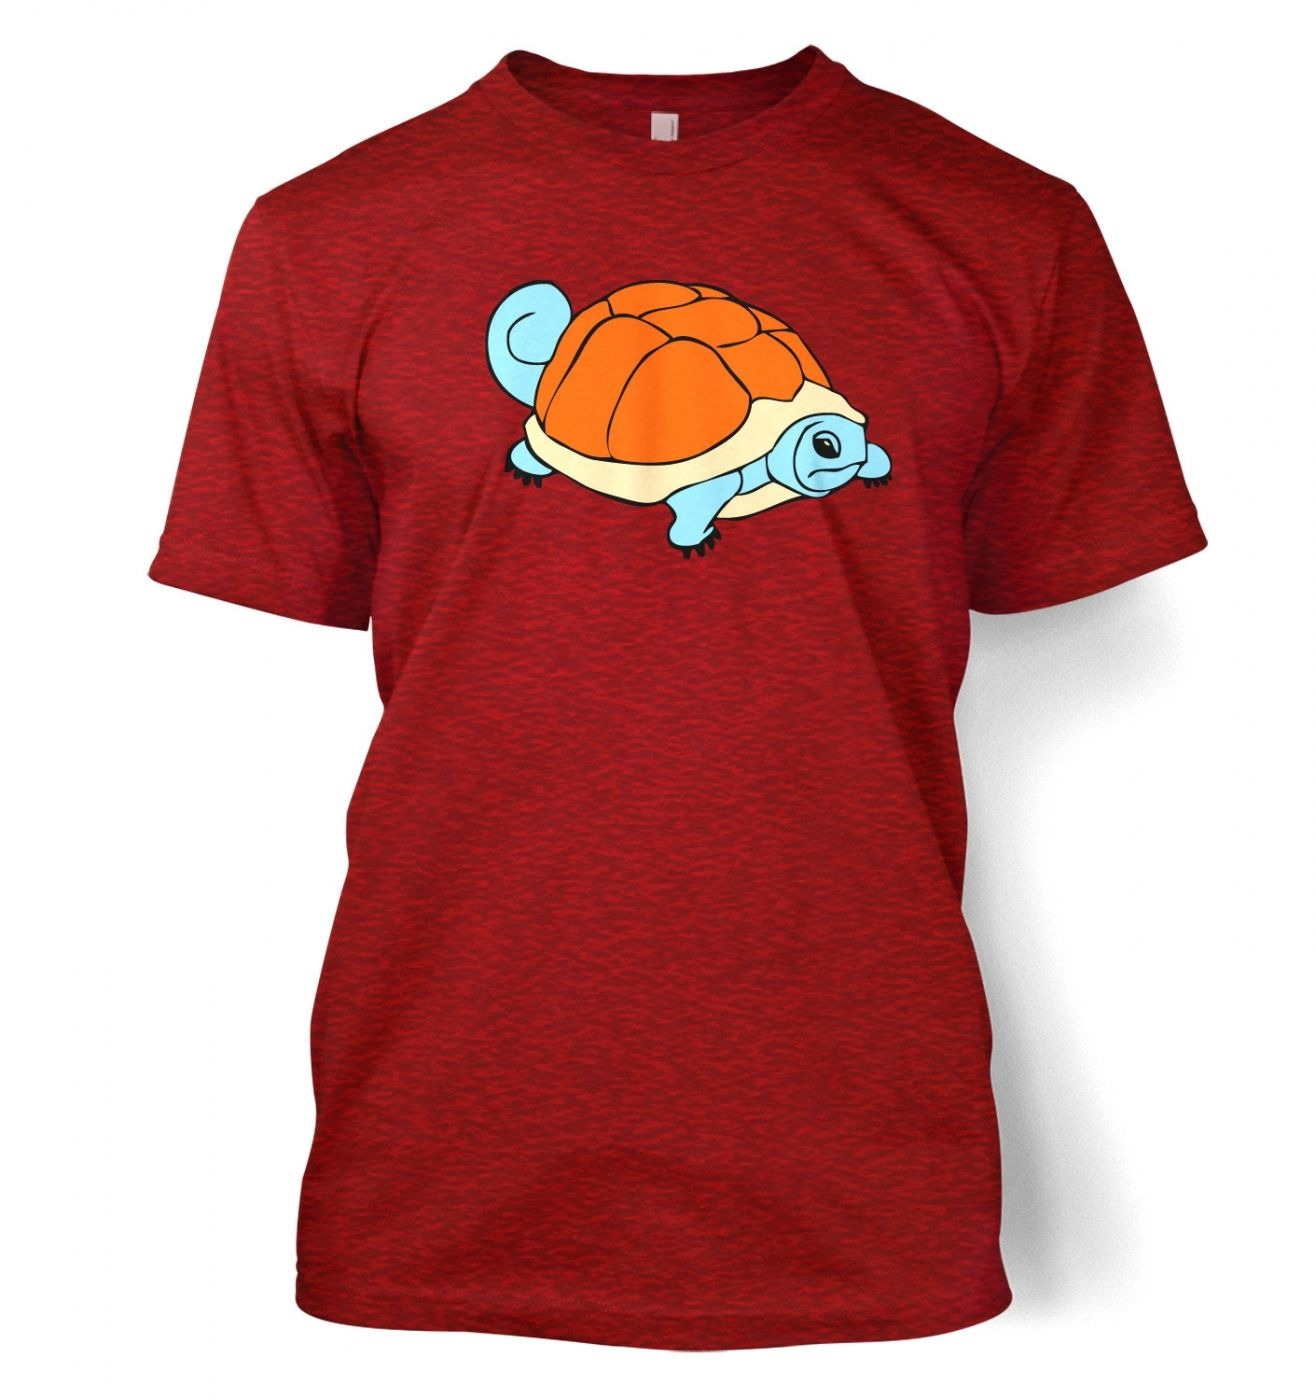 Real Life Squirtle T-Shirt - Inspired by Pokemon